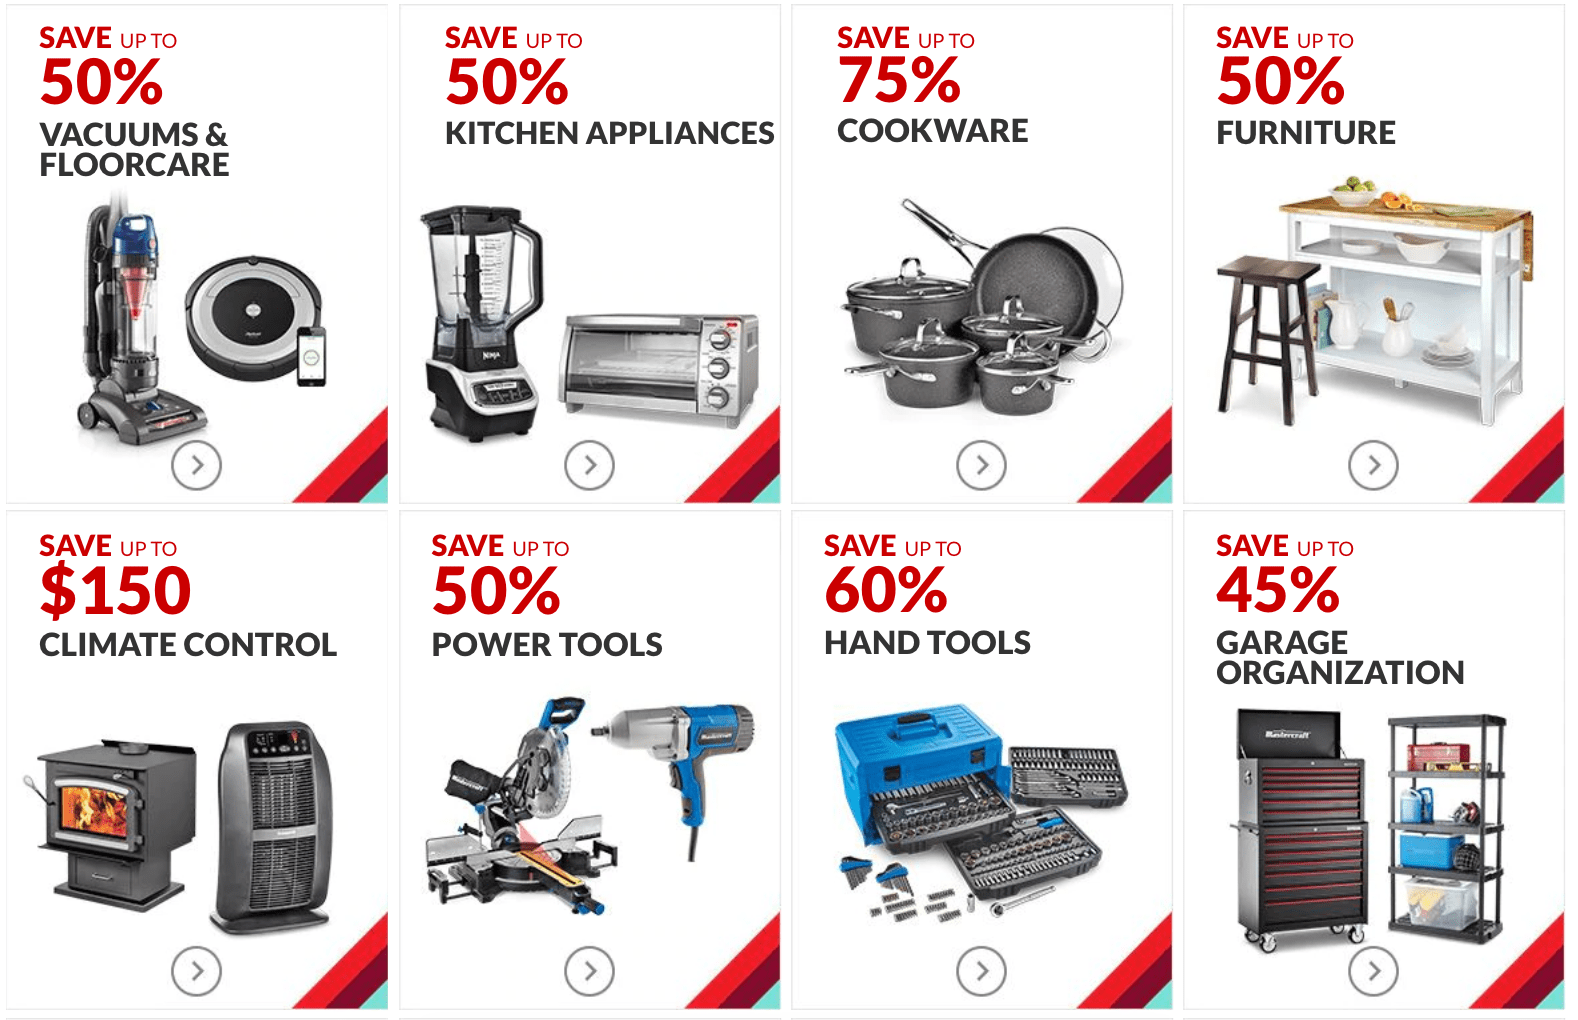 Canadian Tire Sale: Save Up to 65% Off Exercise Equipment + Up to 75% Off Cookware + More